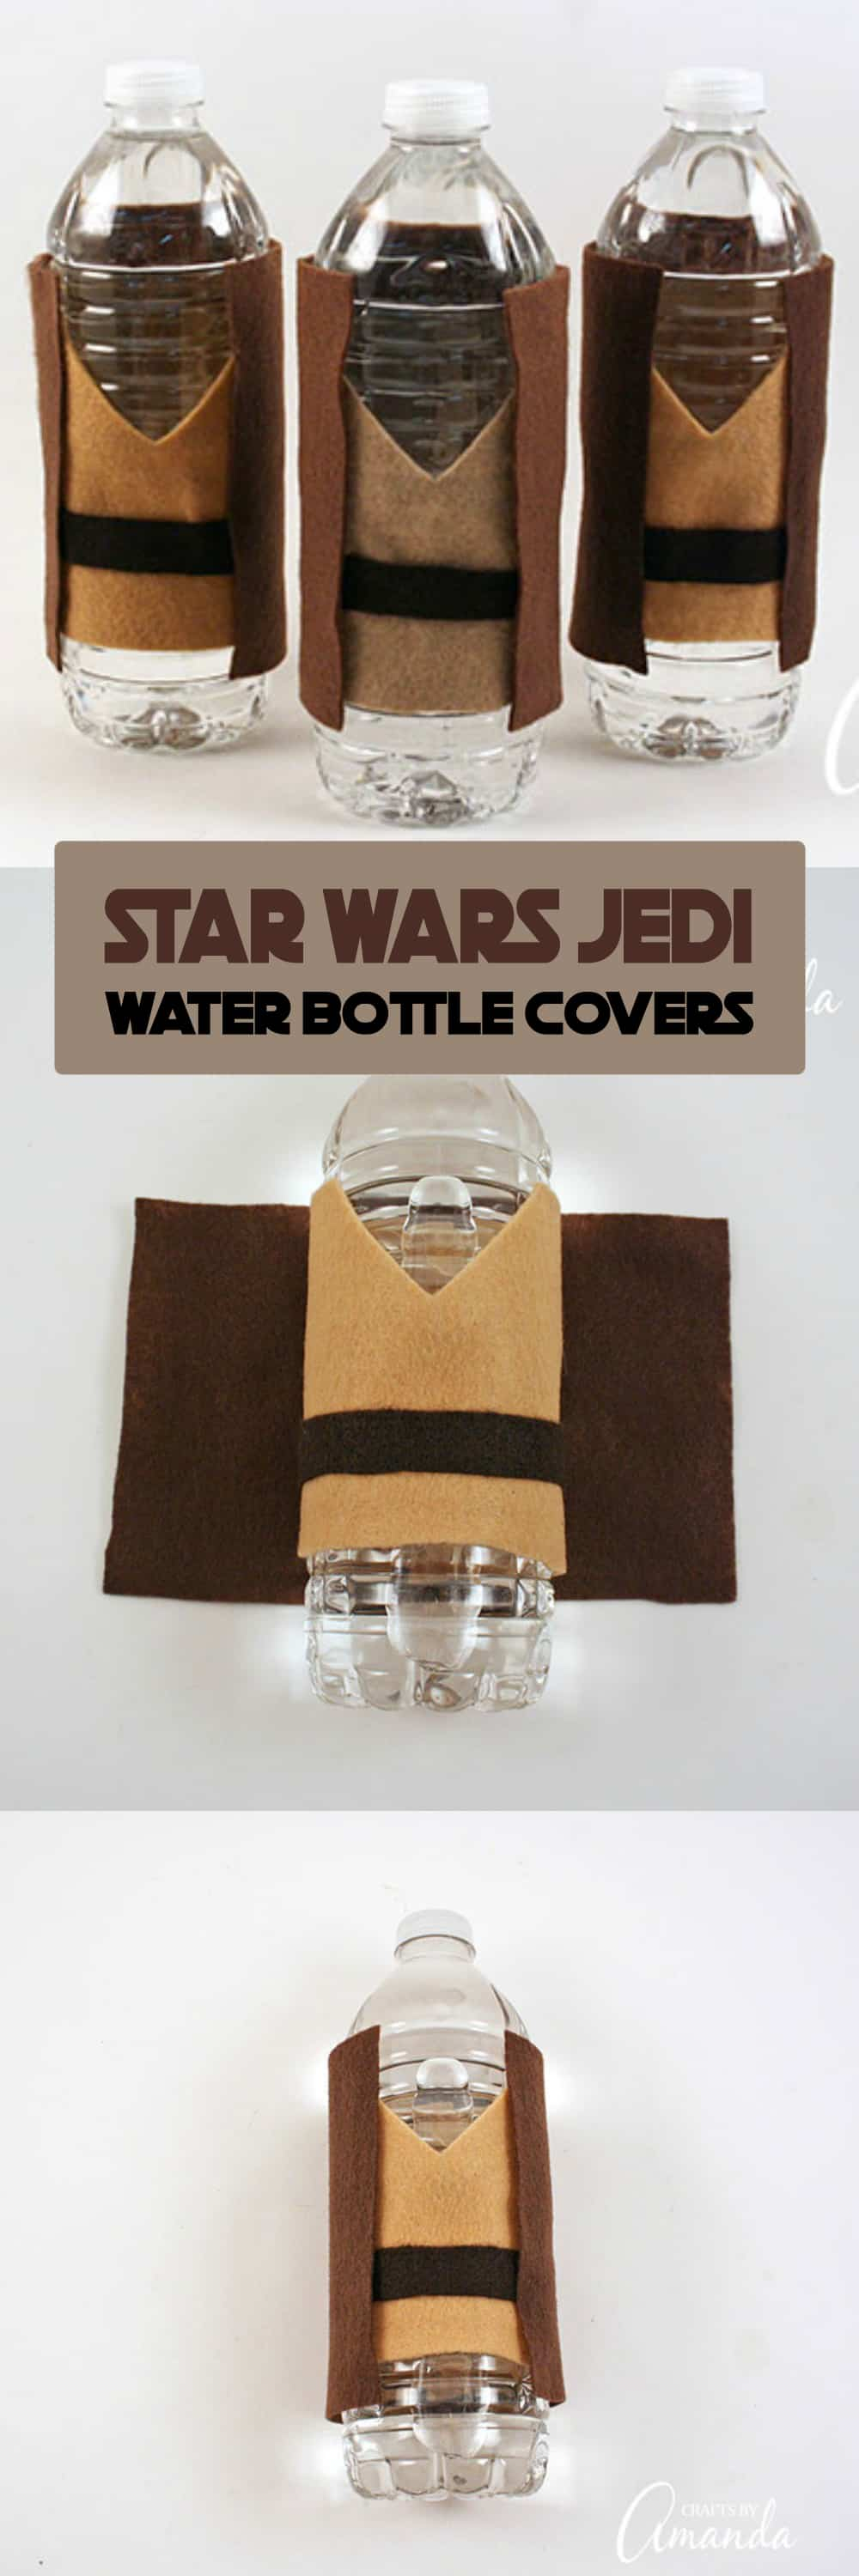 A Star Wars party wouldn't be complete without water bottles decked out in Jedi robes! These Jedi Water Bottle Covers are great for a release day party or birthday party!